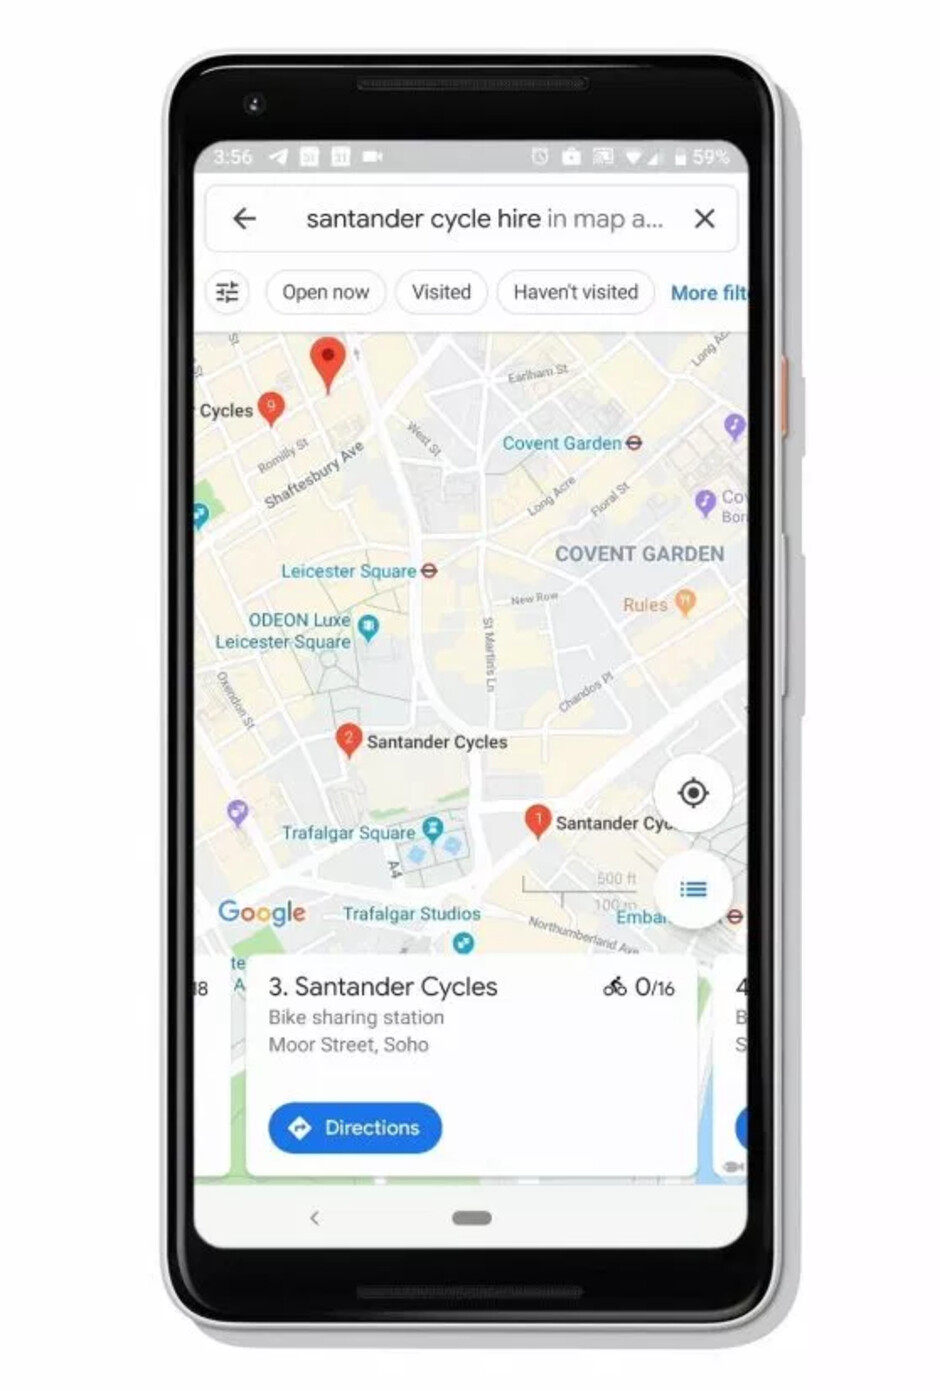 Google Maps will now show you bike sharing stations and number of available bikes in real time